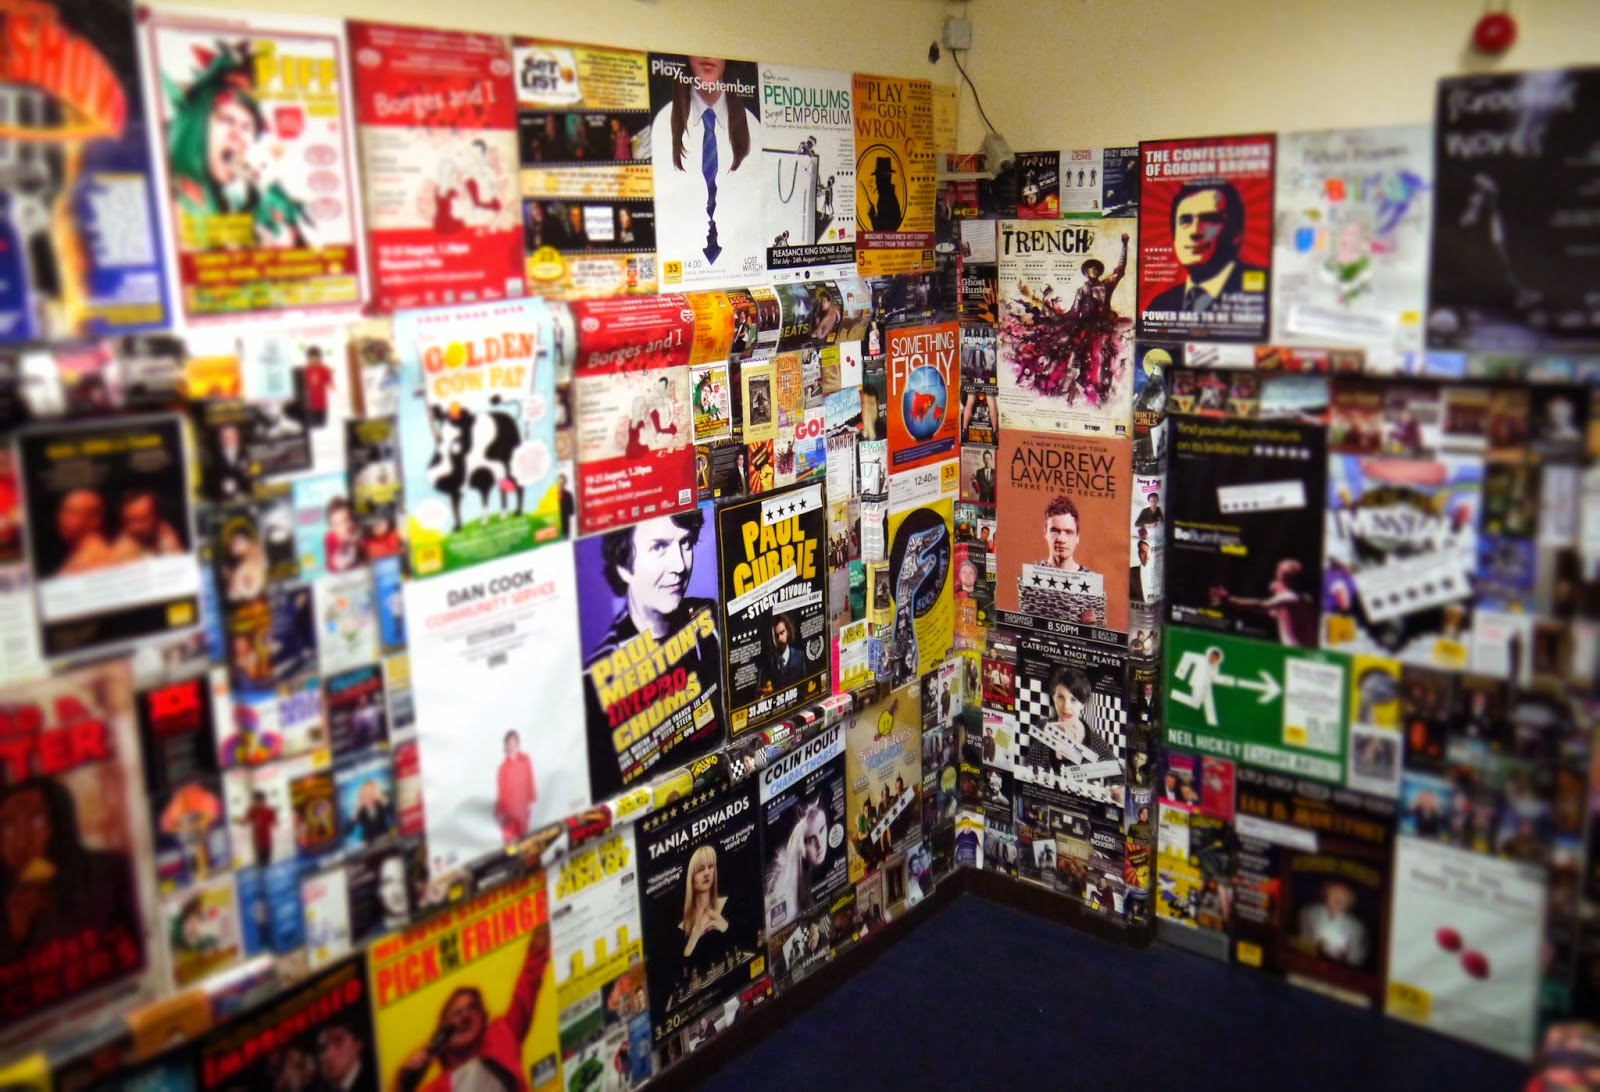 Edinburgh Fringe Pleasance Dome Posters